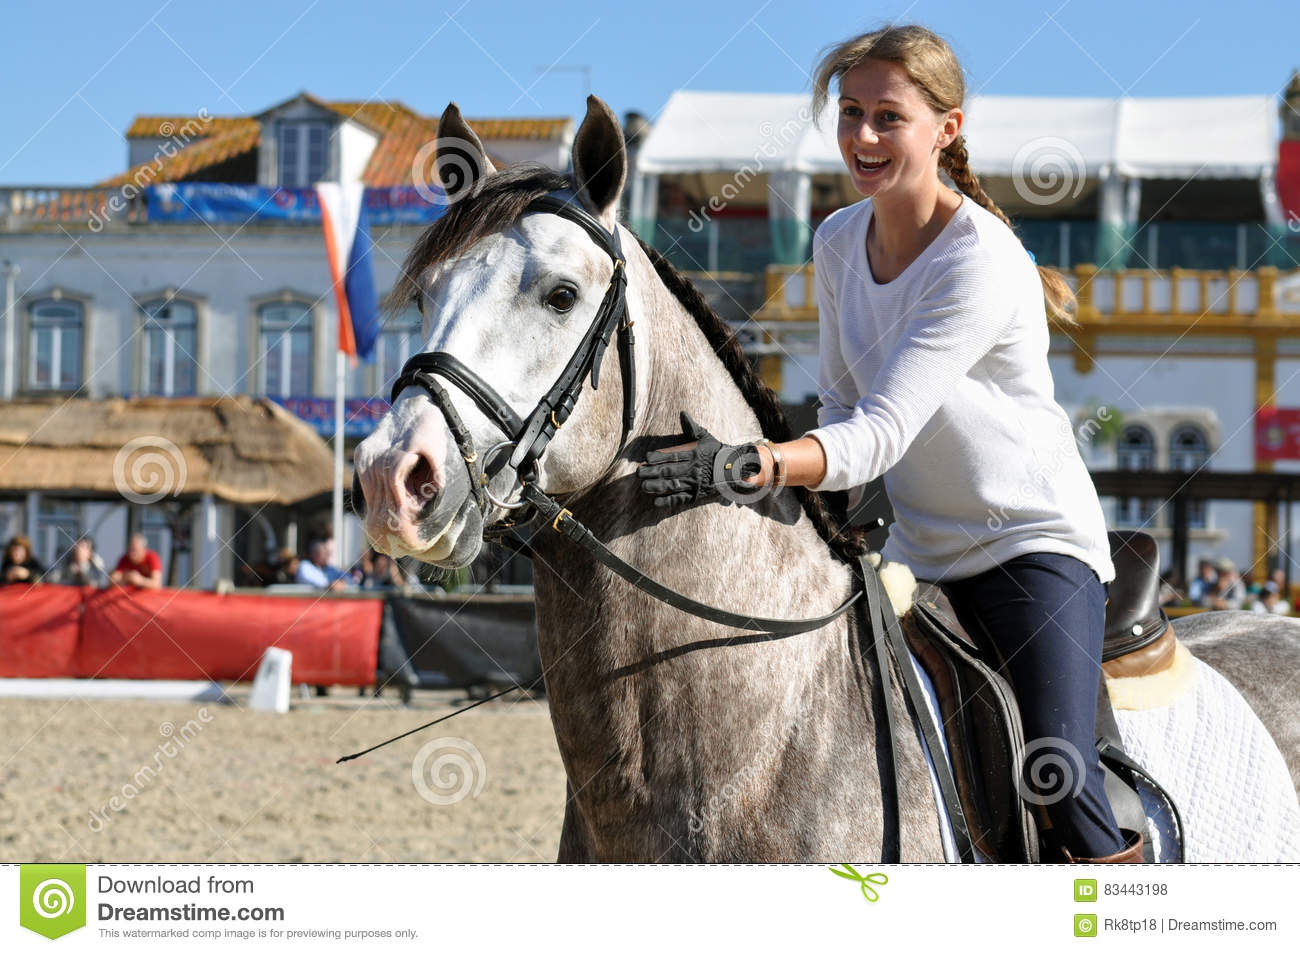 WOW Girl riding horse